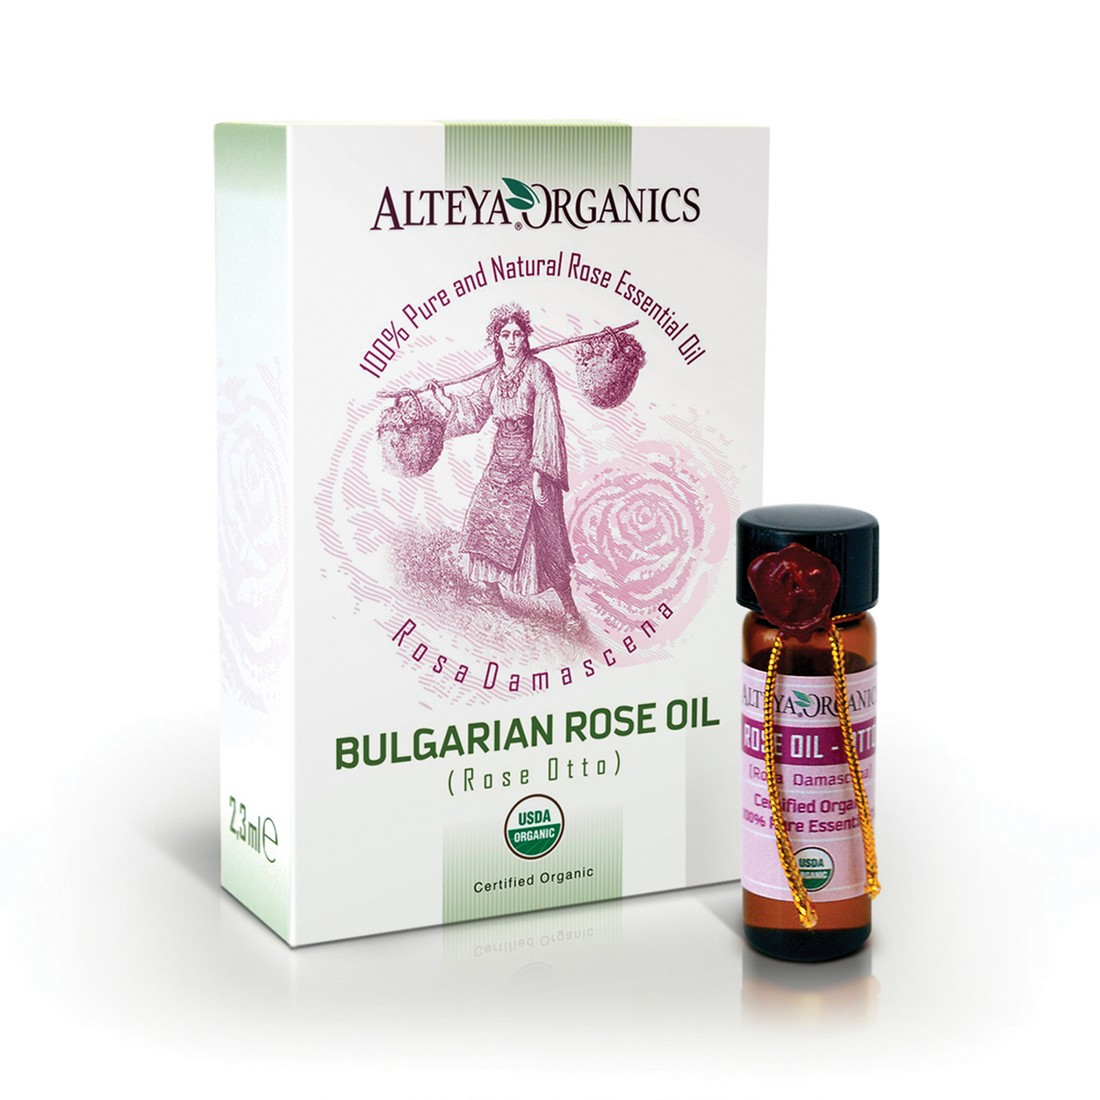 Bio organic Bulgarian rose oil 2,3 ml. Alteya Organics